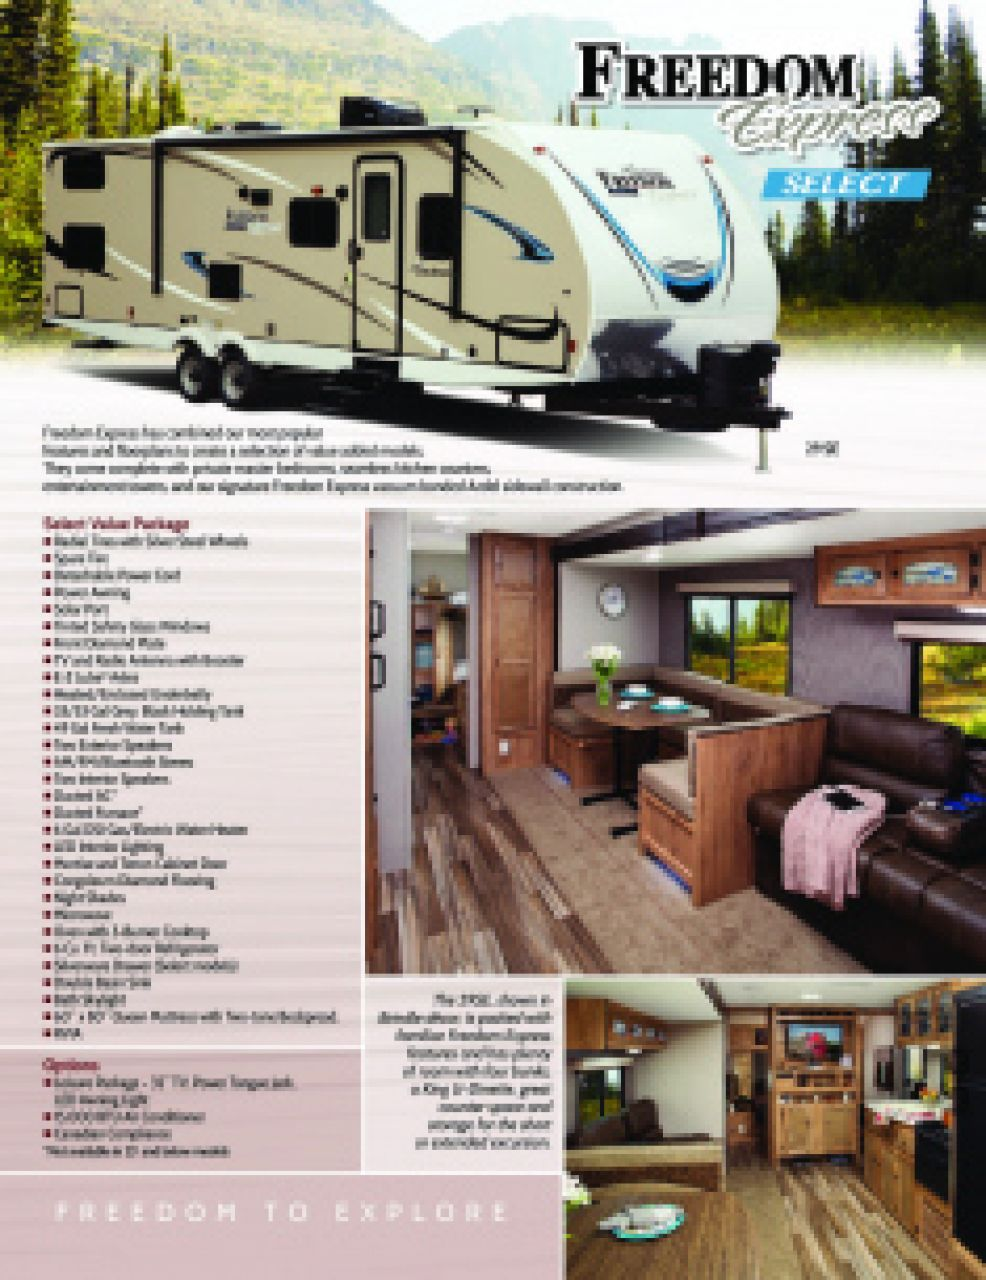 freedomexpressselect-2019-broch-gilrv-pdf